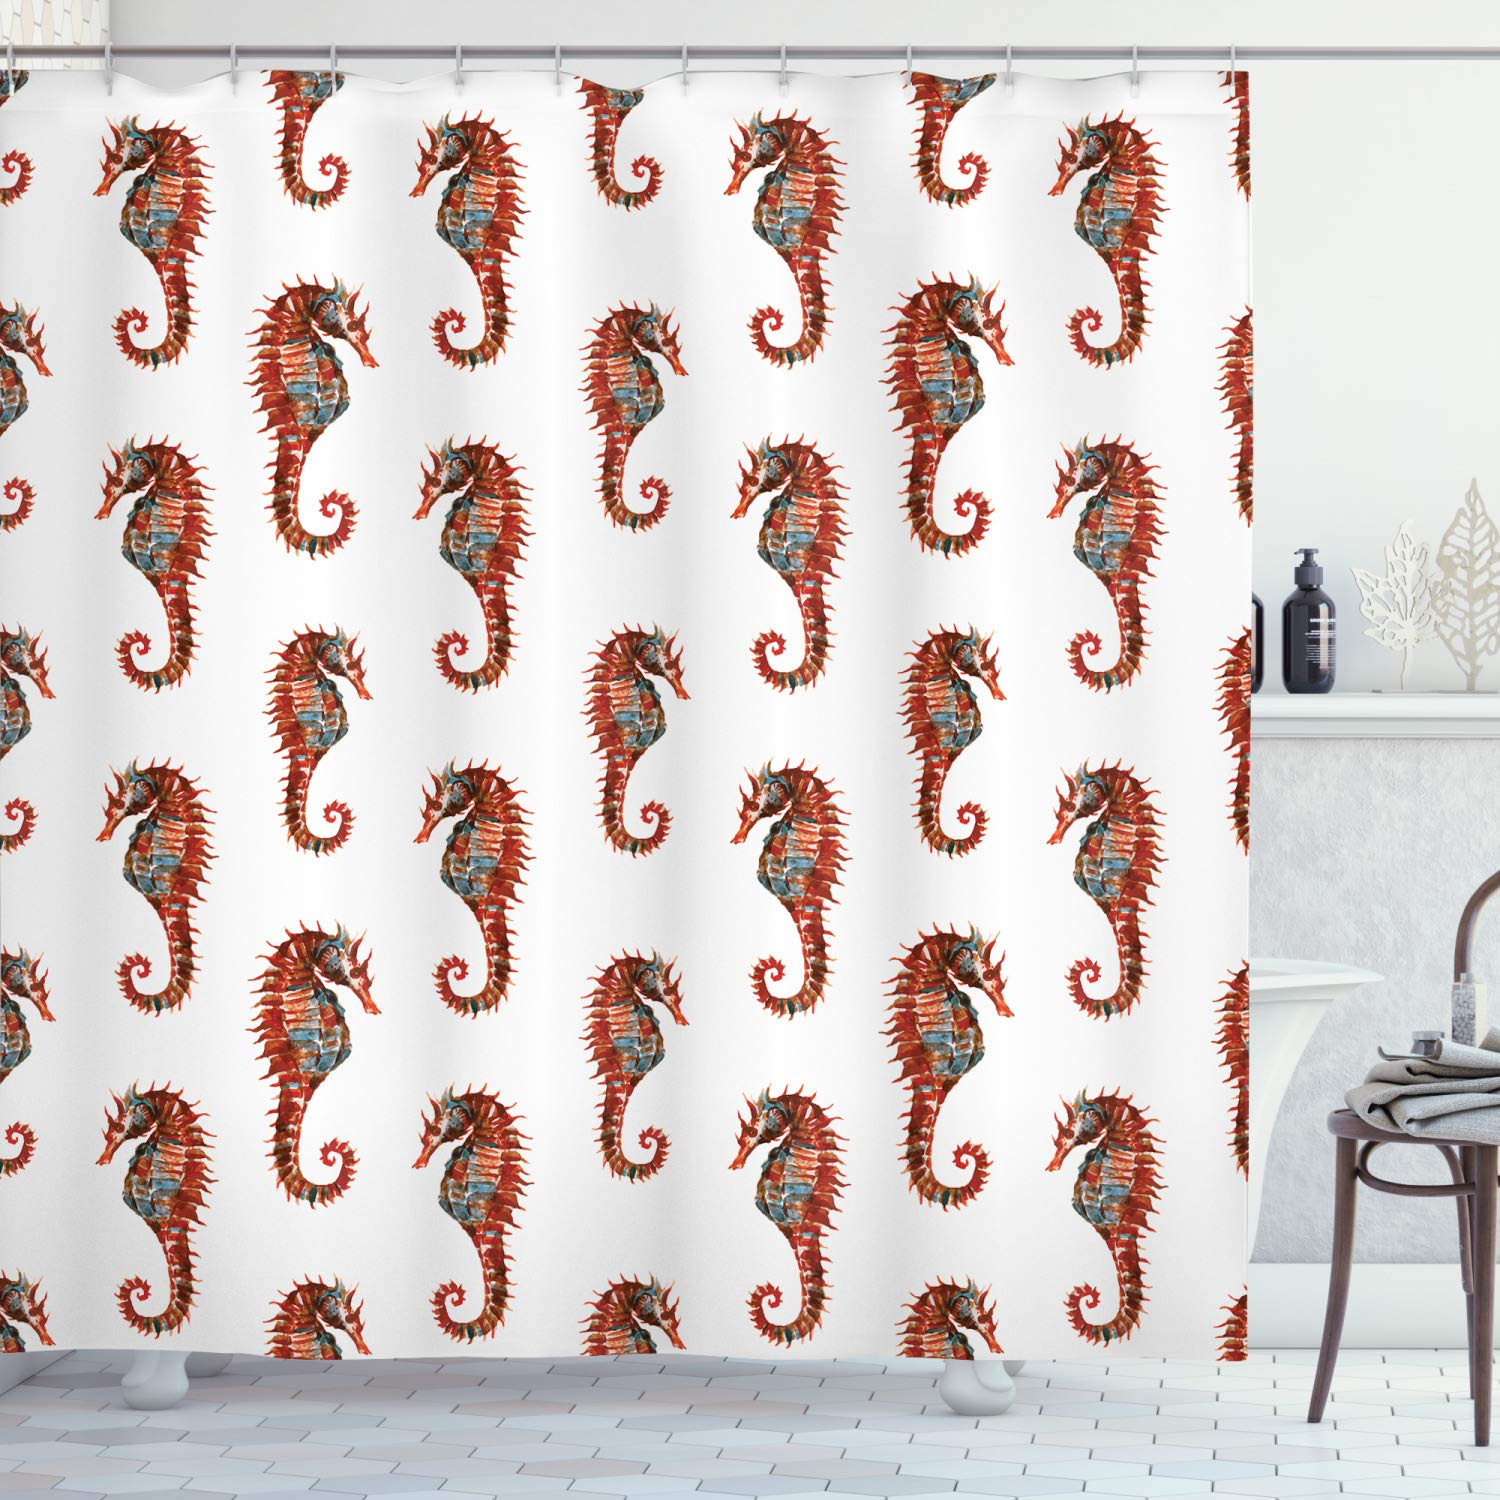 """Ambesonne Animal Shower Curtain, Watercolor Seahorse Pattern with Vibrant Effect Beauty of Nature Design, Cloth Fabric Bathroom Decor Set with Hooks, 75"""" Long, Dark Orange"""